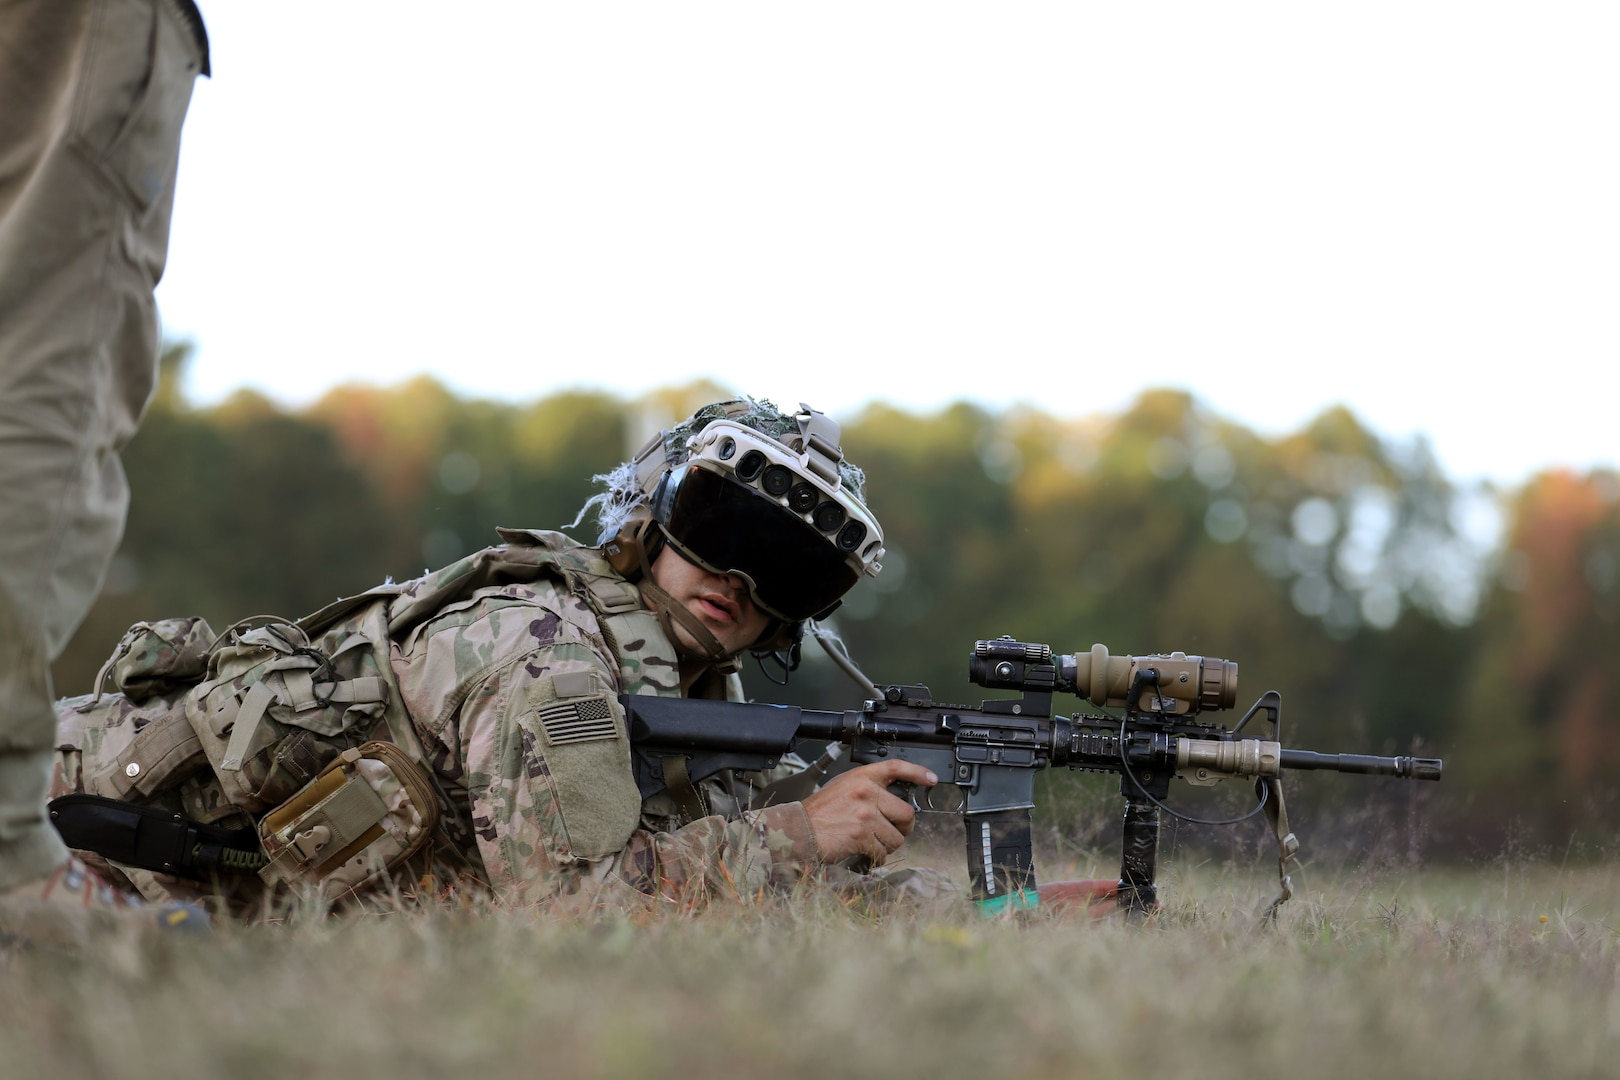 Soldier tests the Capability Set 3 (CS3) militarized form factor prototype of the Army's Integrated Visual Augmentation System (IVAS) during a life fire test event at its third Soldier Touchpoint (STP 3) at Fort Pickett, Virginia.